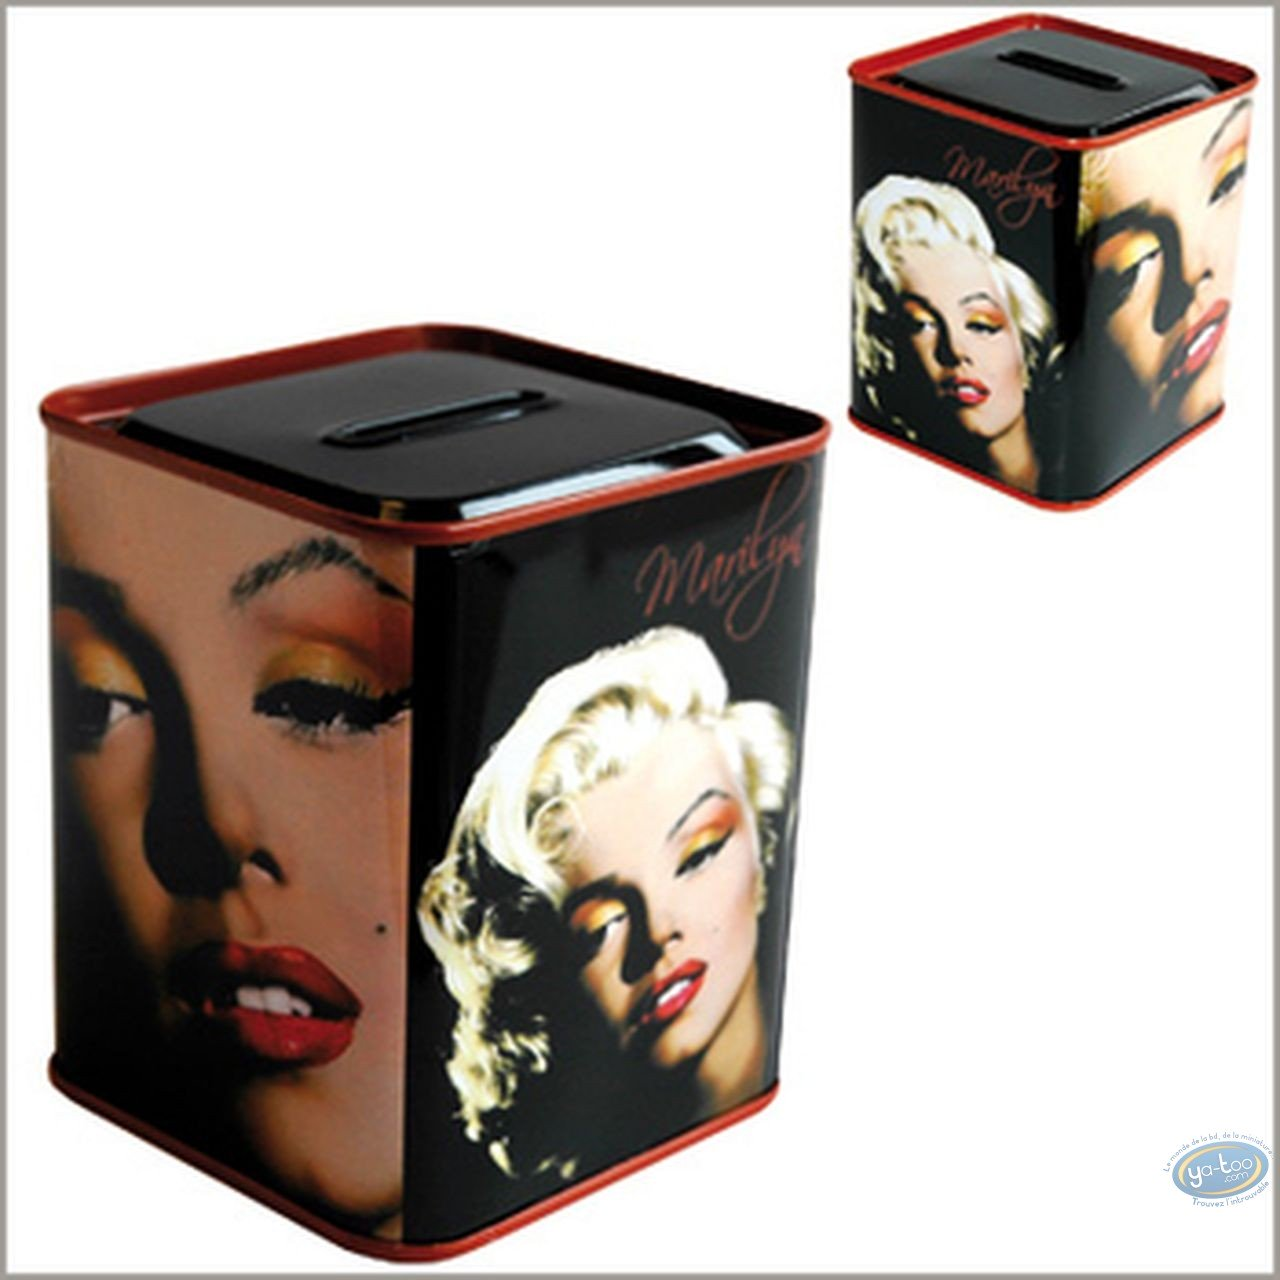 Piggy Bank, Marilyn Monroe : Square Moneybank, Marilyn Monroe